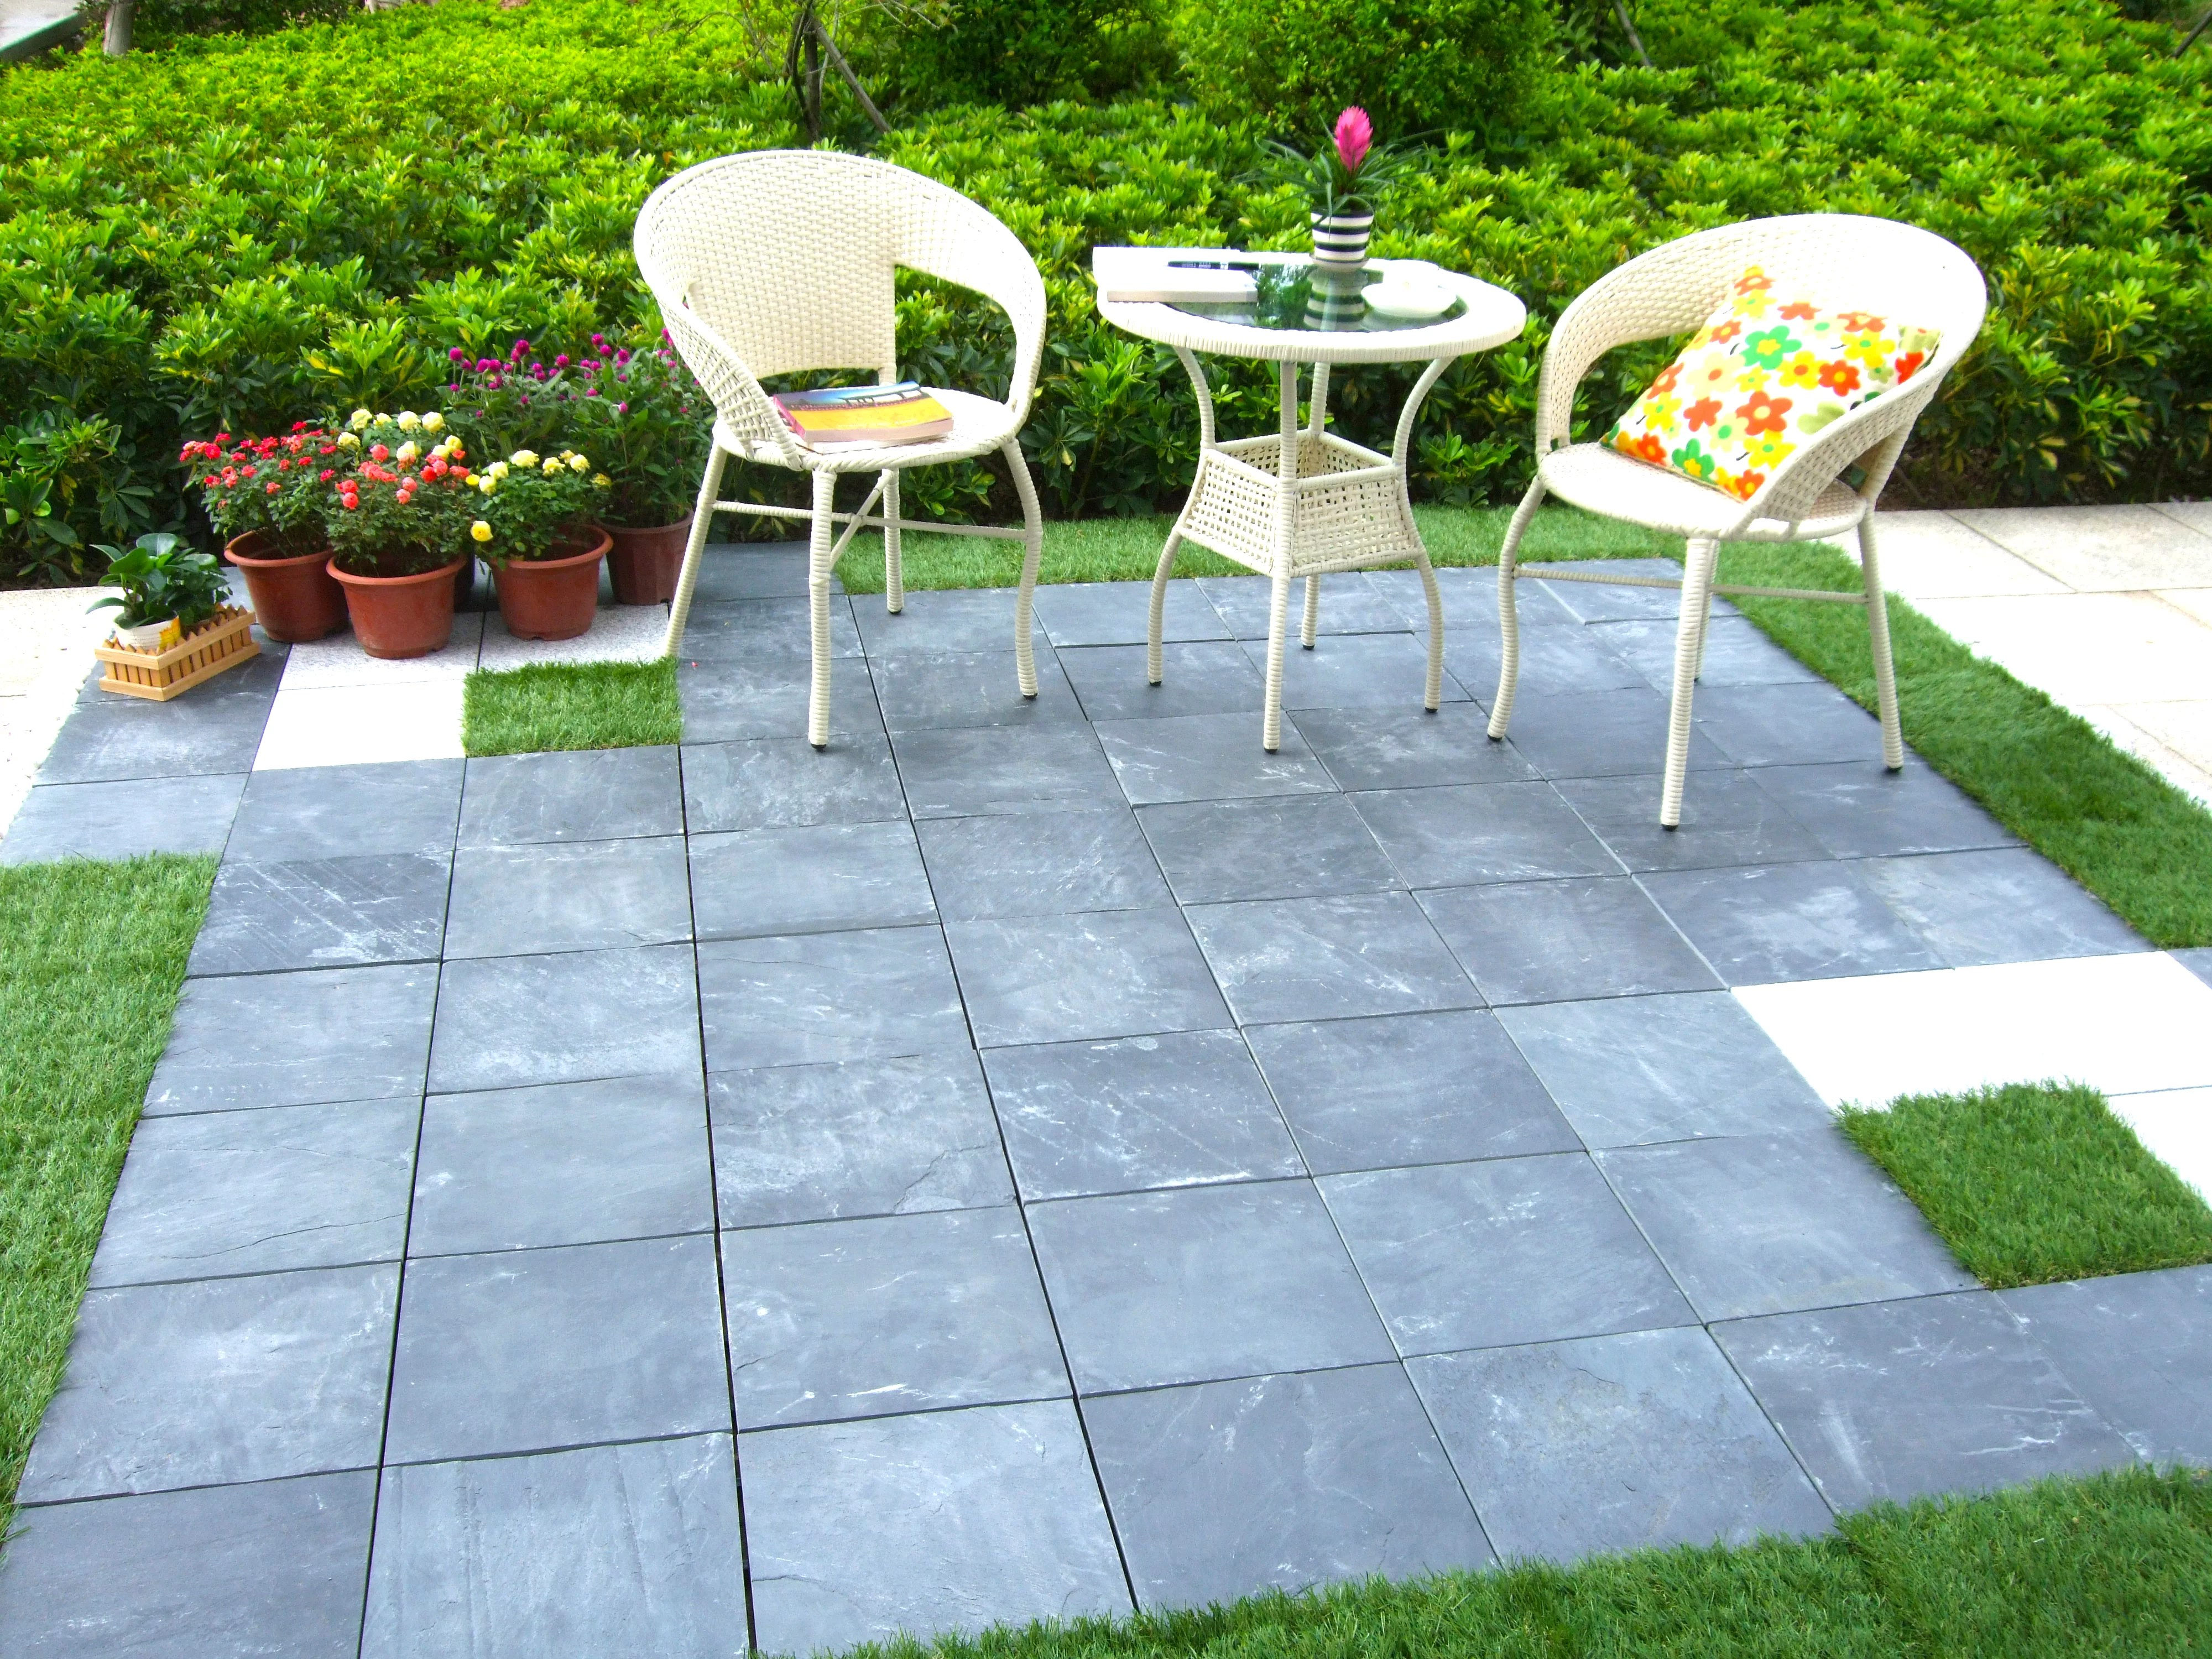 Interlocking Deck Tiles Courtyard 11 8